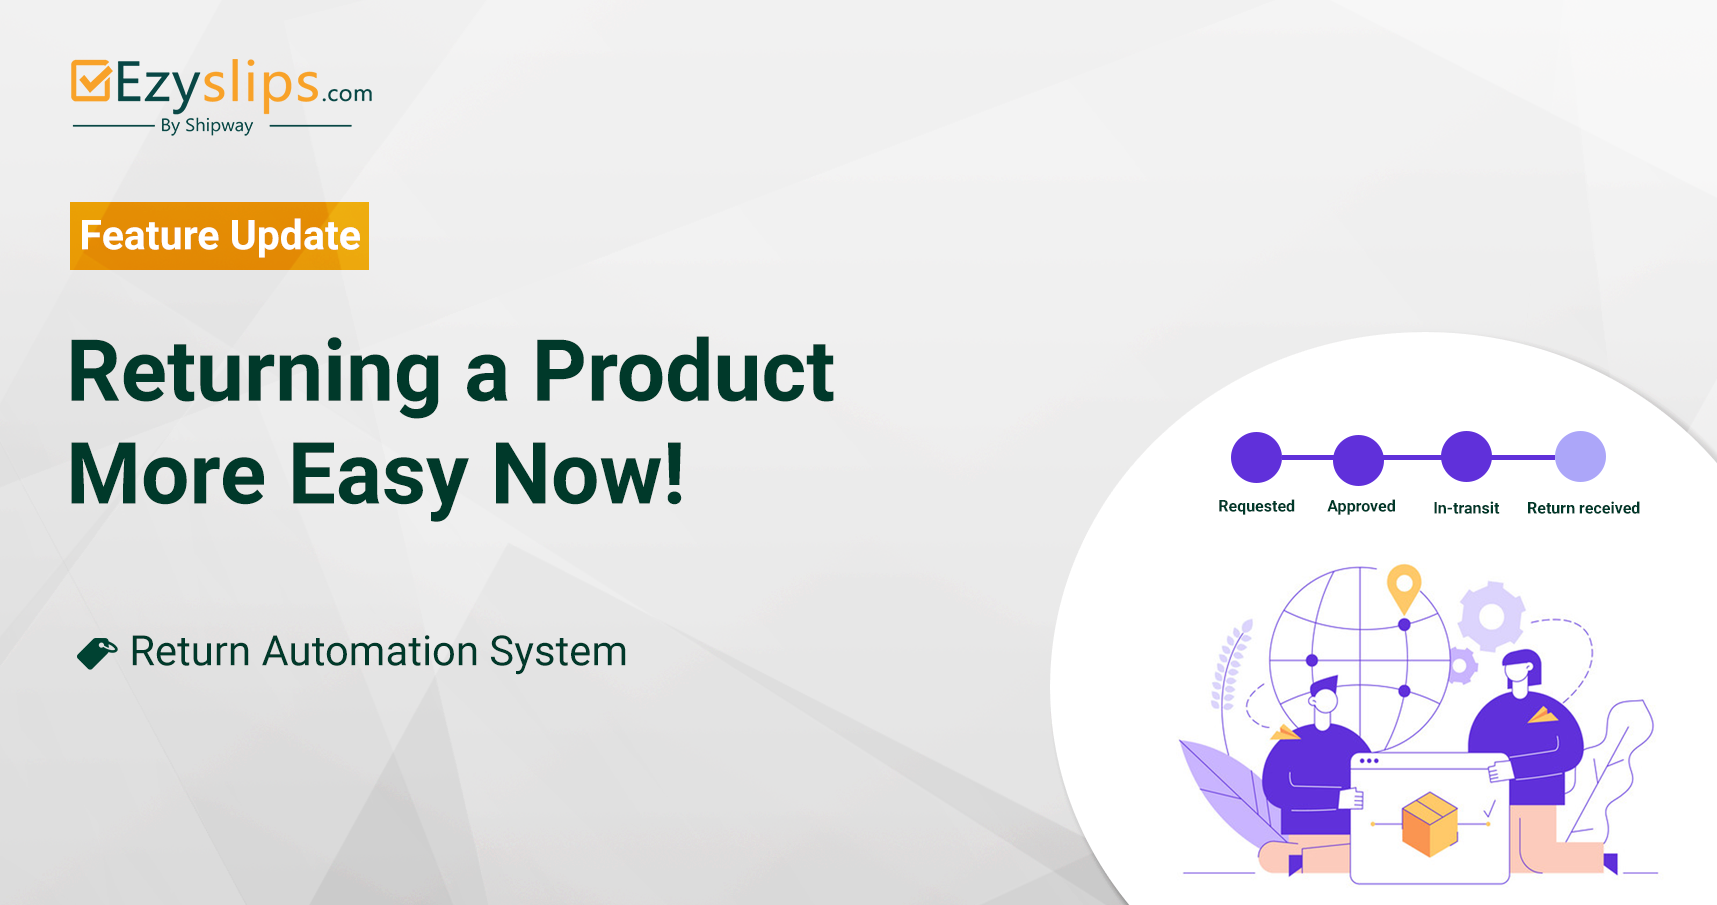 Returning a Product is More Easy Now!